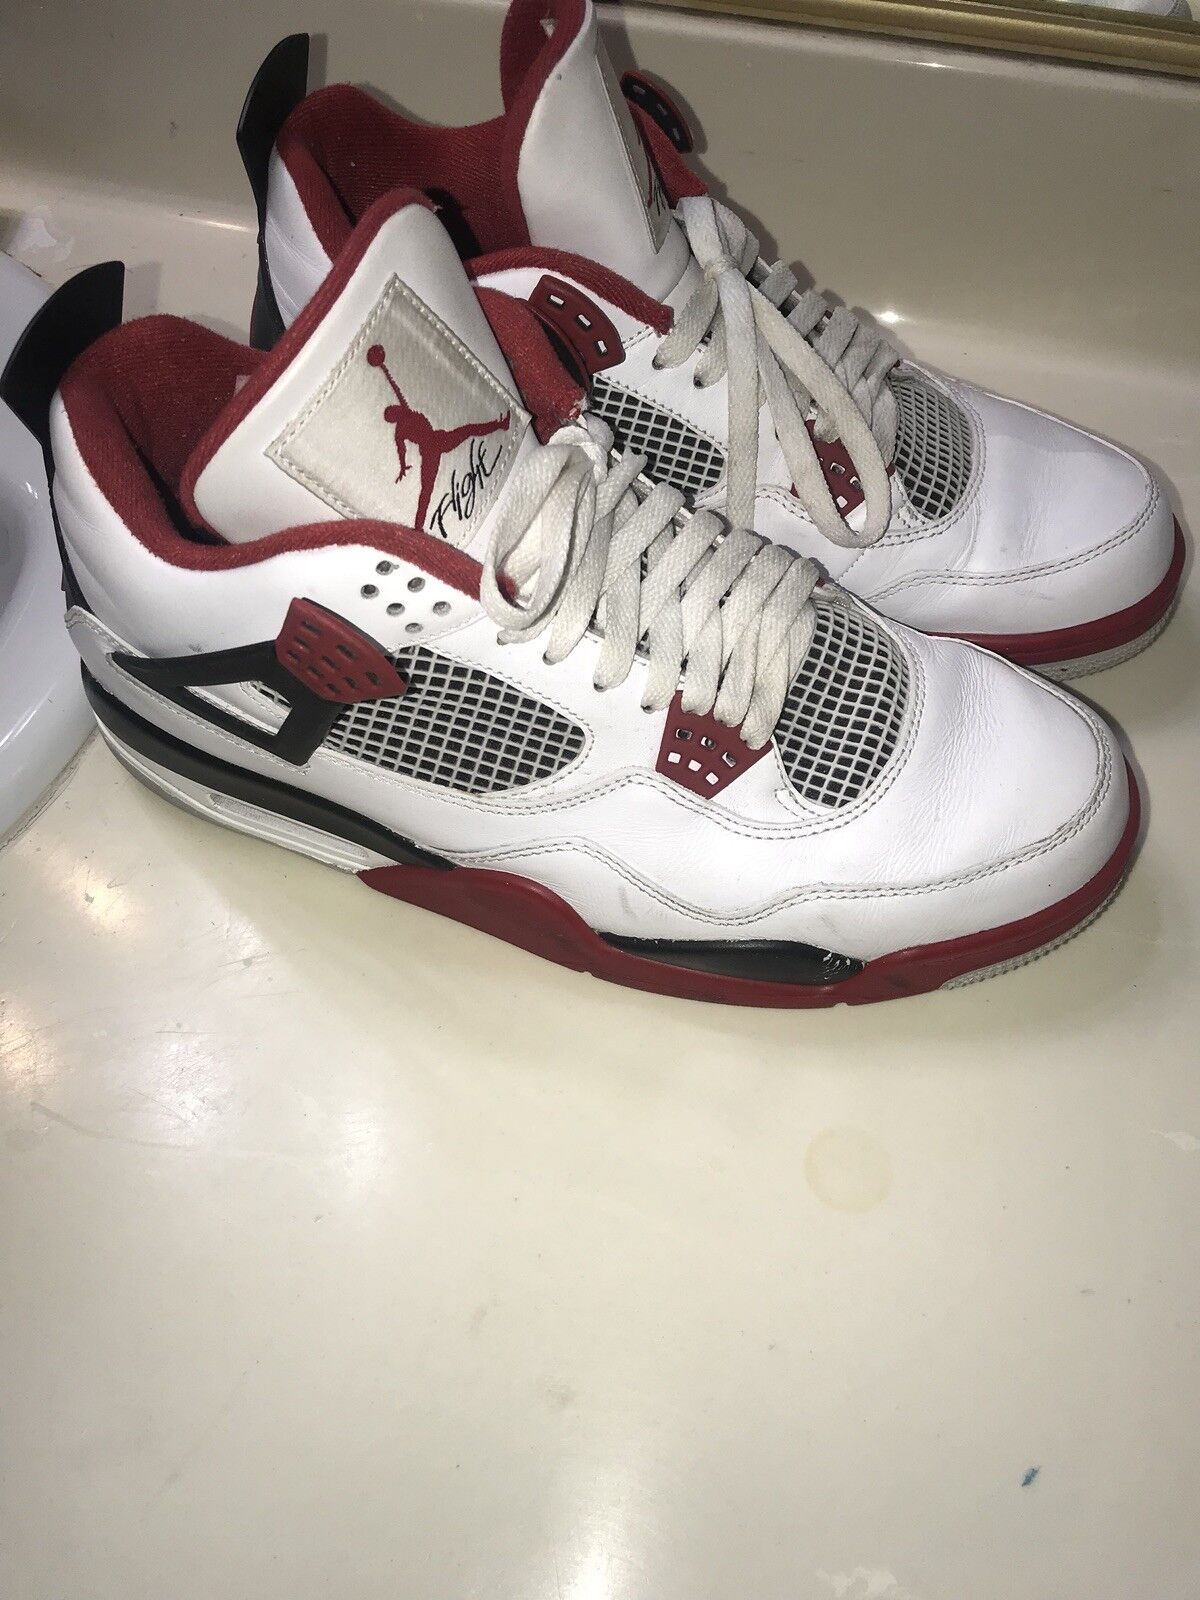 Nike Jordan Retro 4 Fire Red Size 11